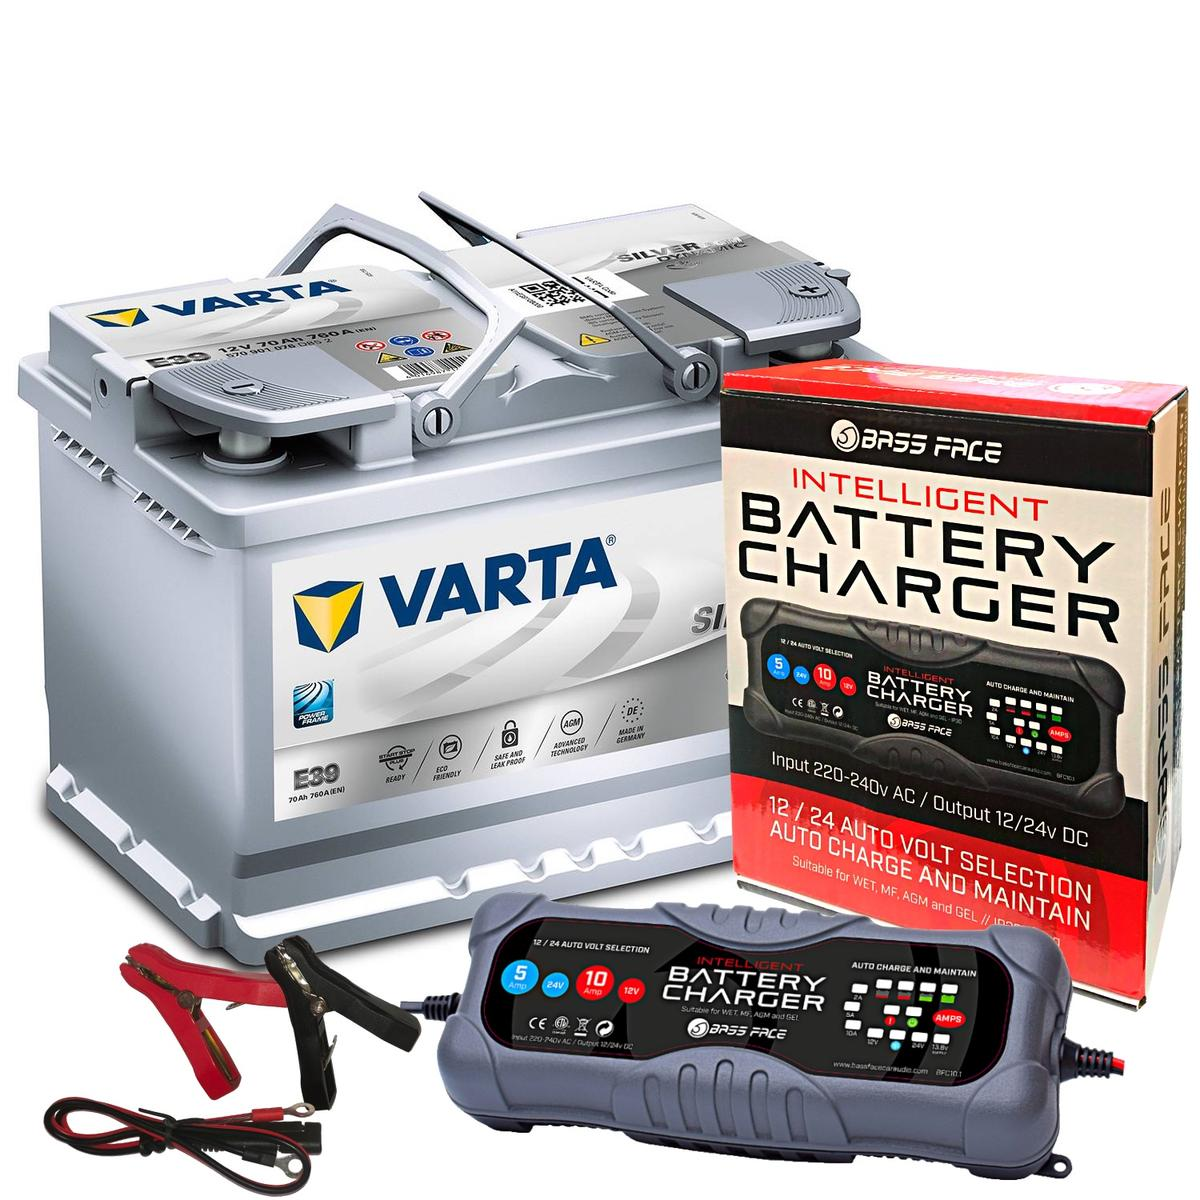 Varta E39 Audi BMW Car Battery 12v 4 Year 096 70Ah 760CCA AGM W/ 10 Amp Charger